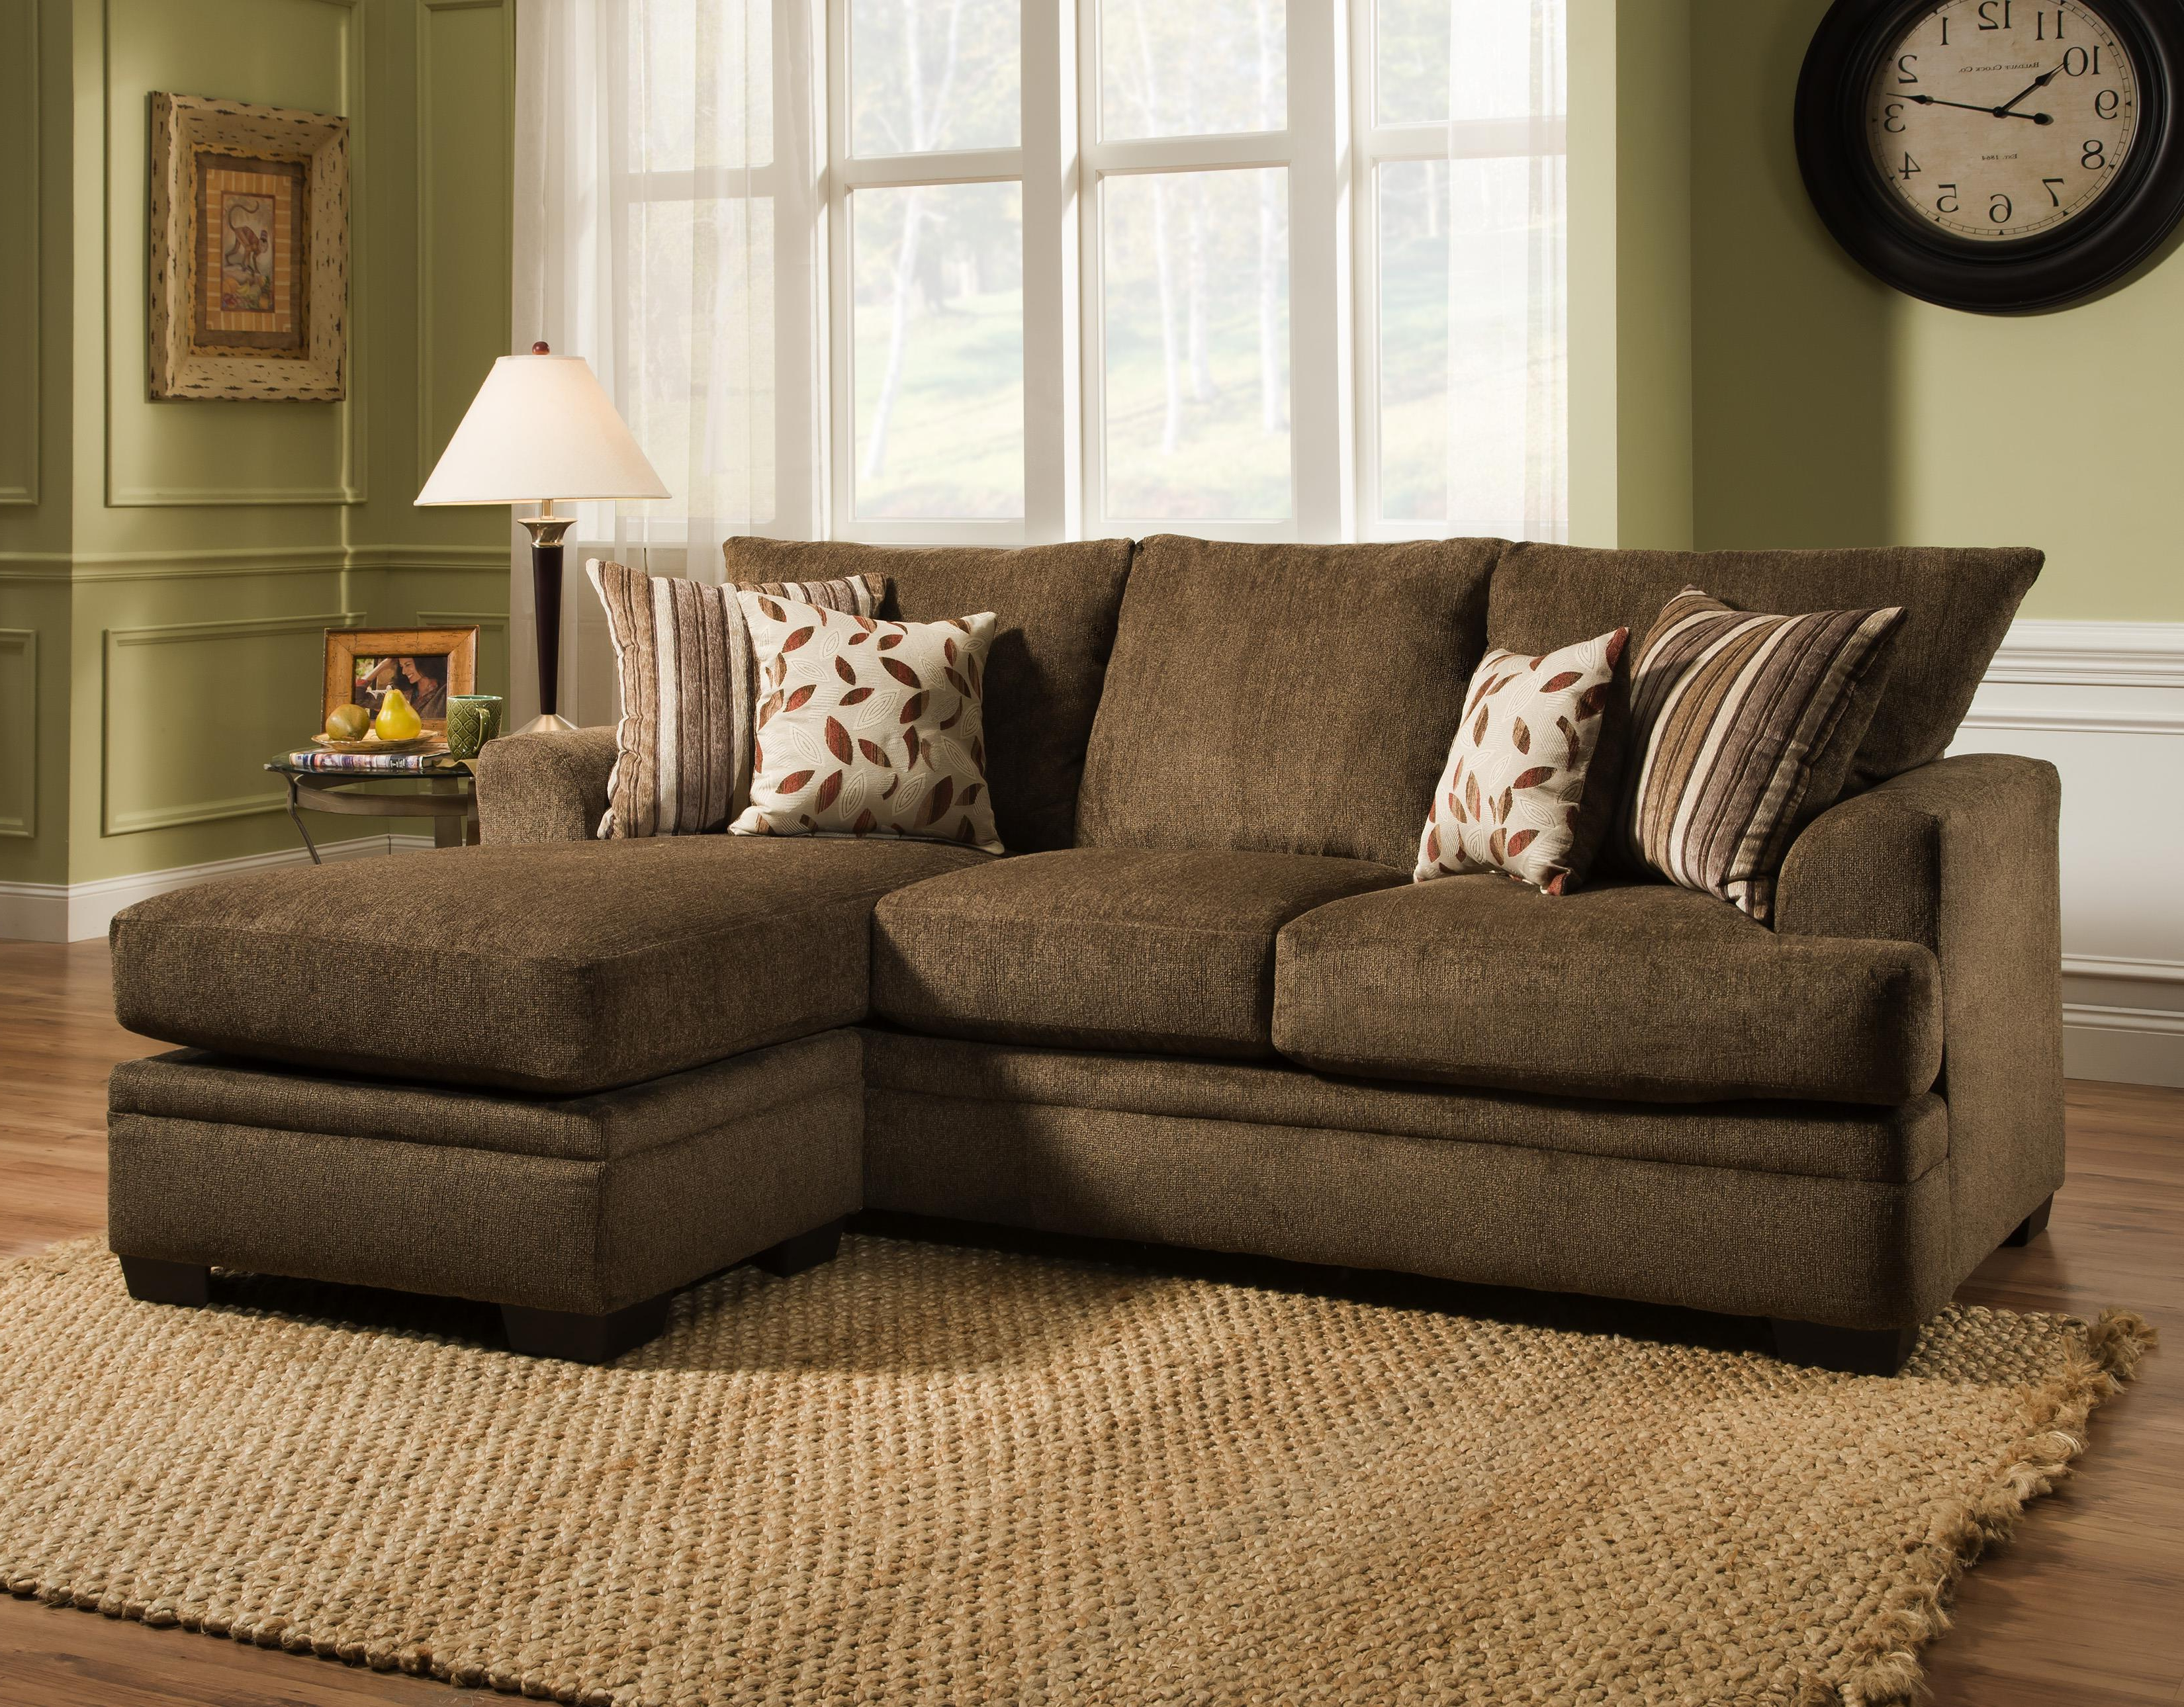 Newest American Furniture 3650 3657 1661 Sofa Chaise (View 3 of 20)